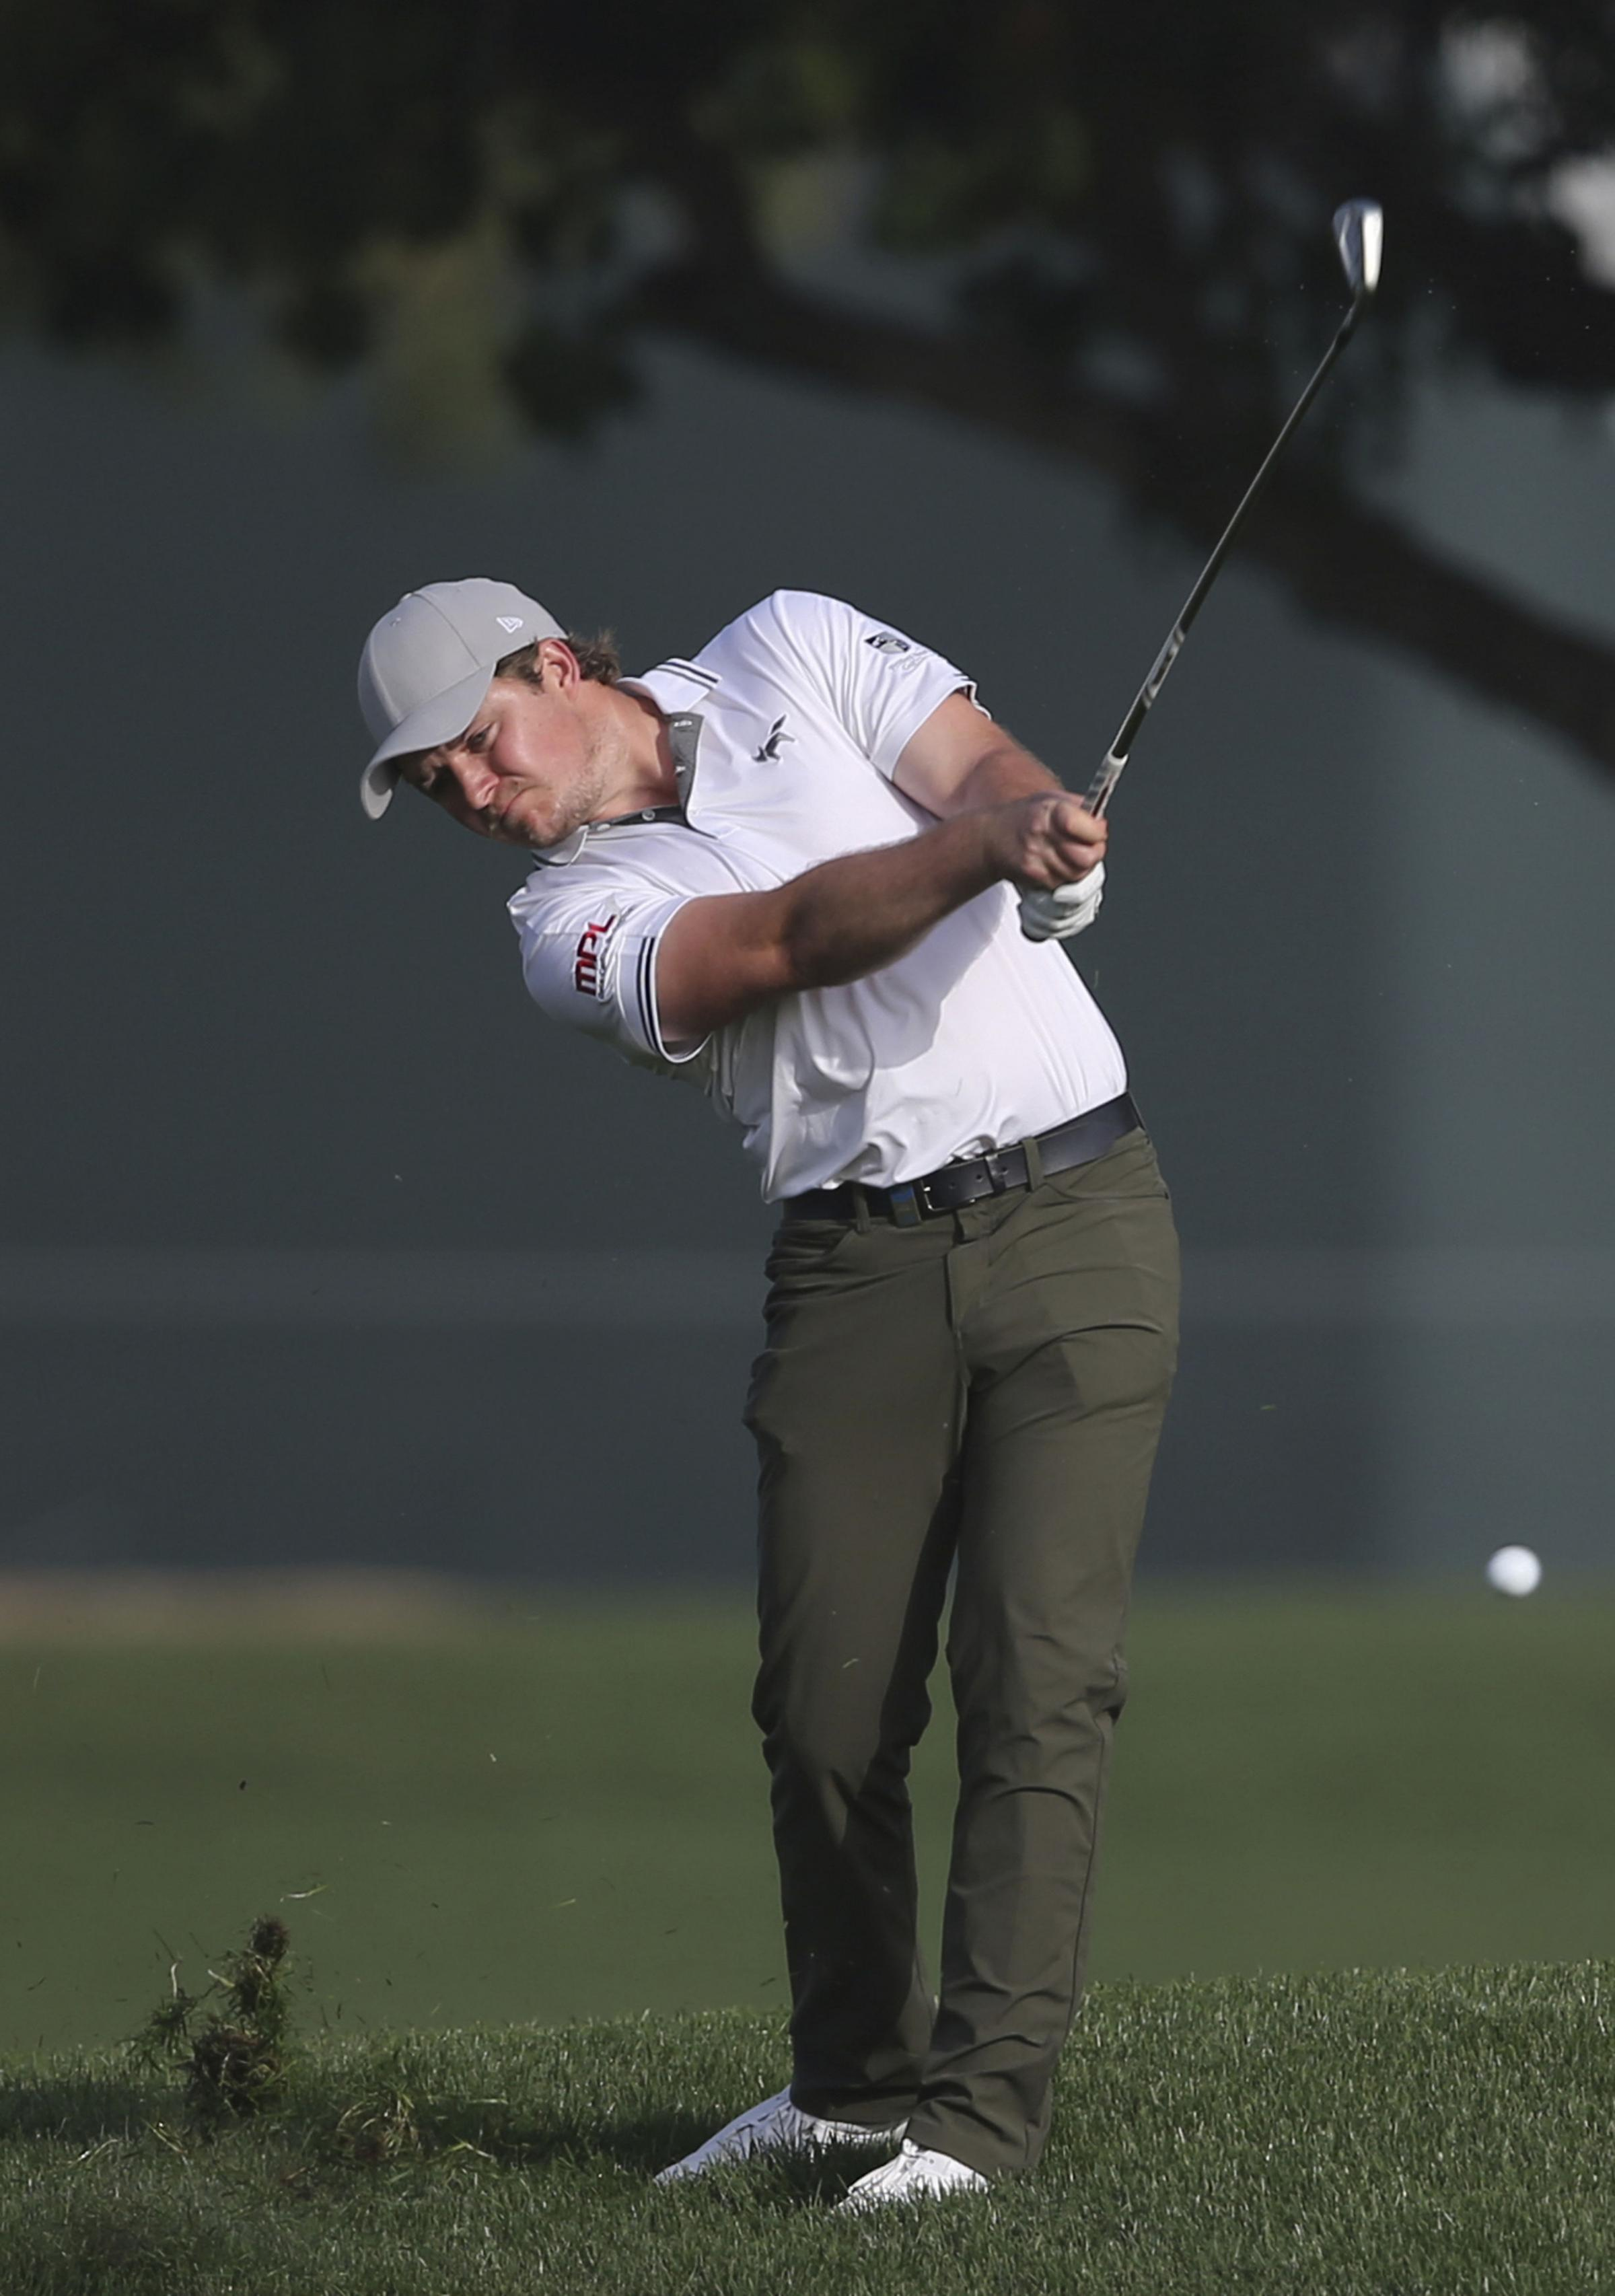 Eddie Pepperell produced steady second round Picture: AP Photo/Kamran Jebreili